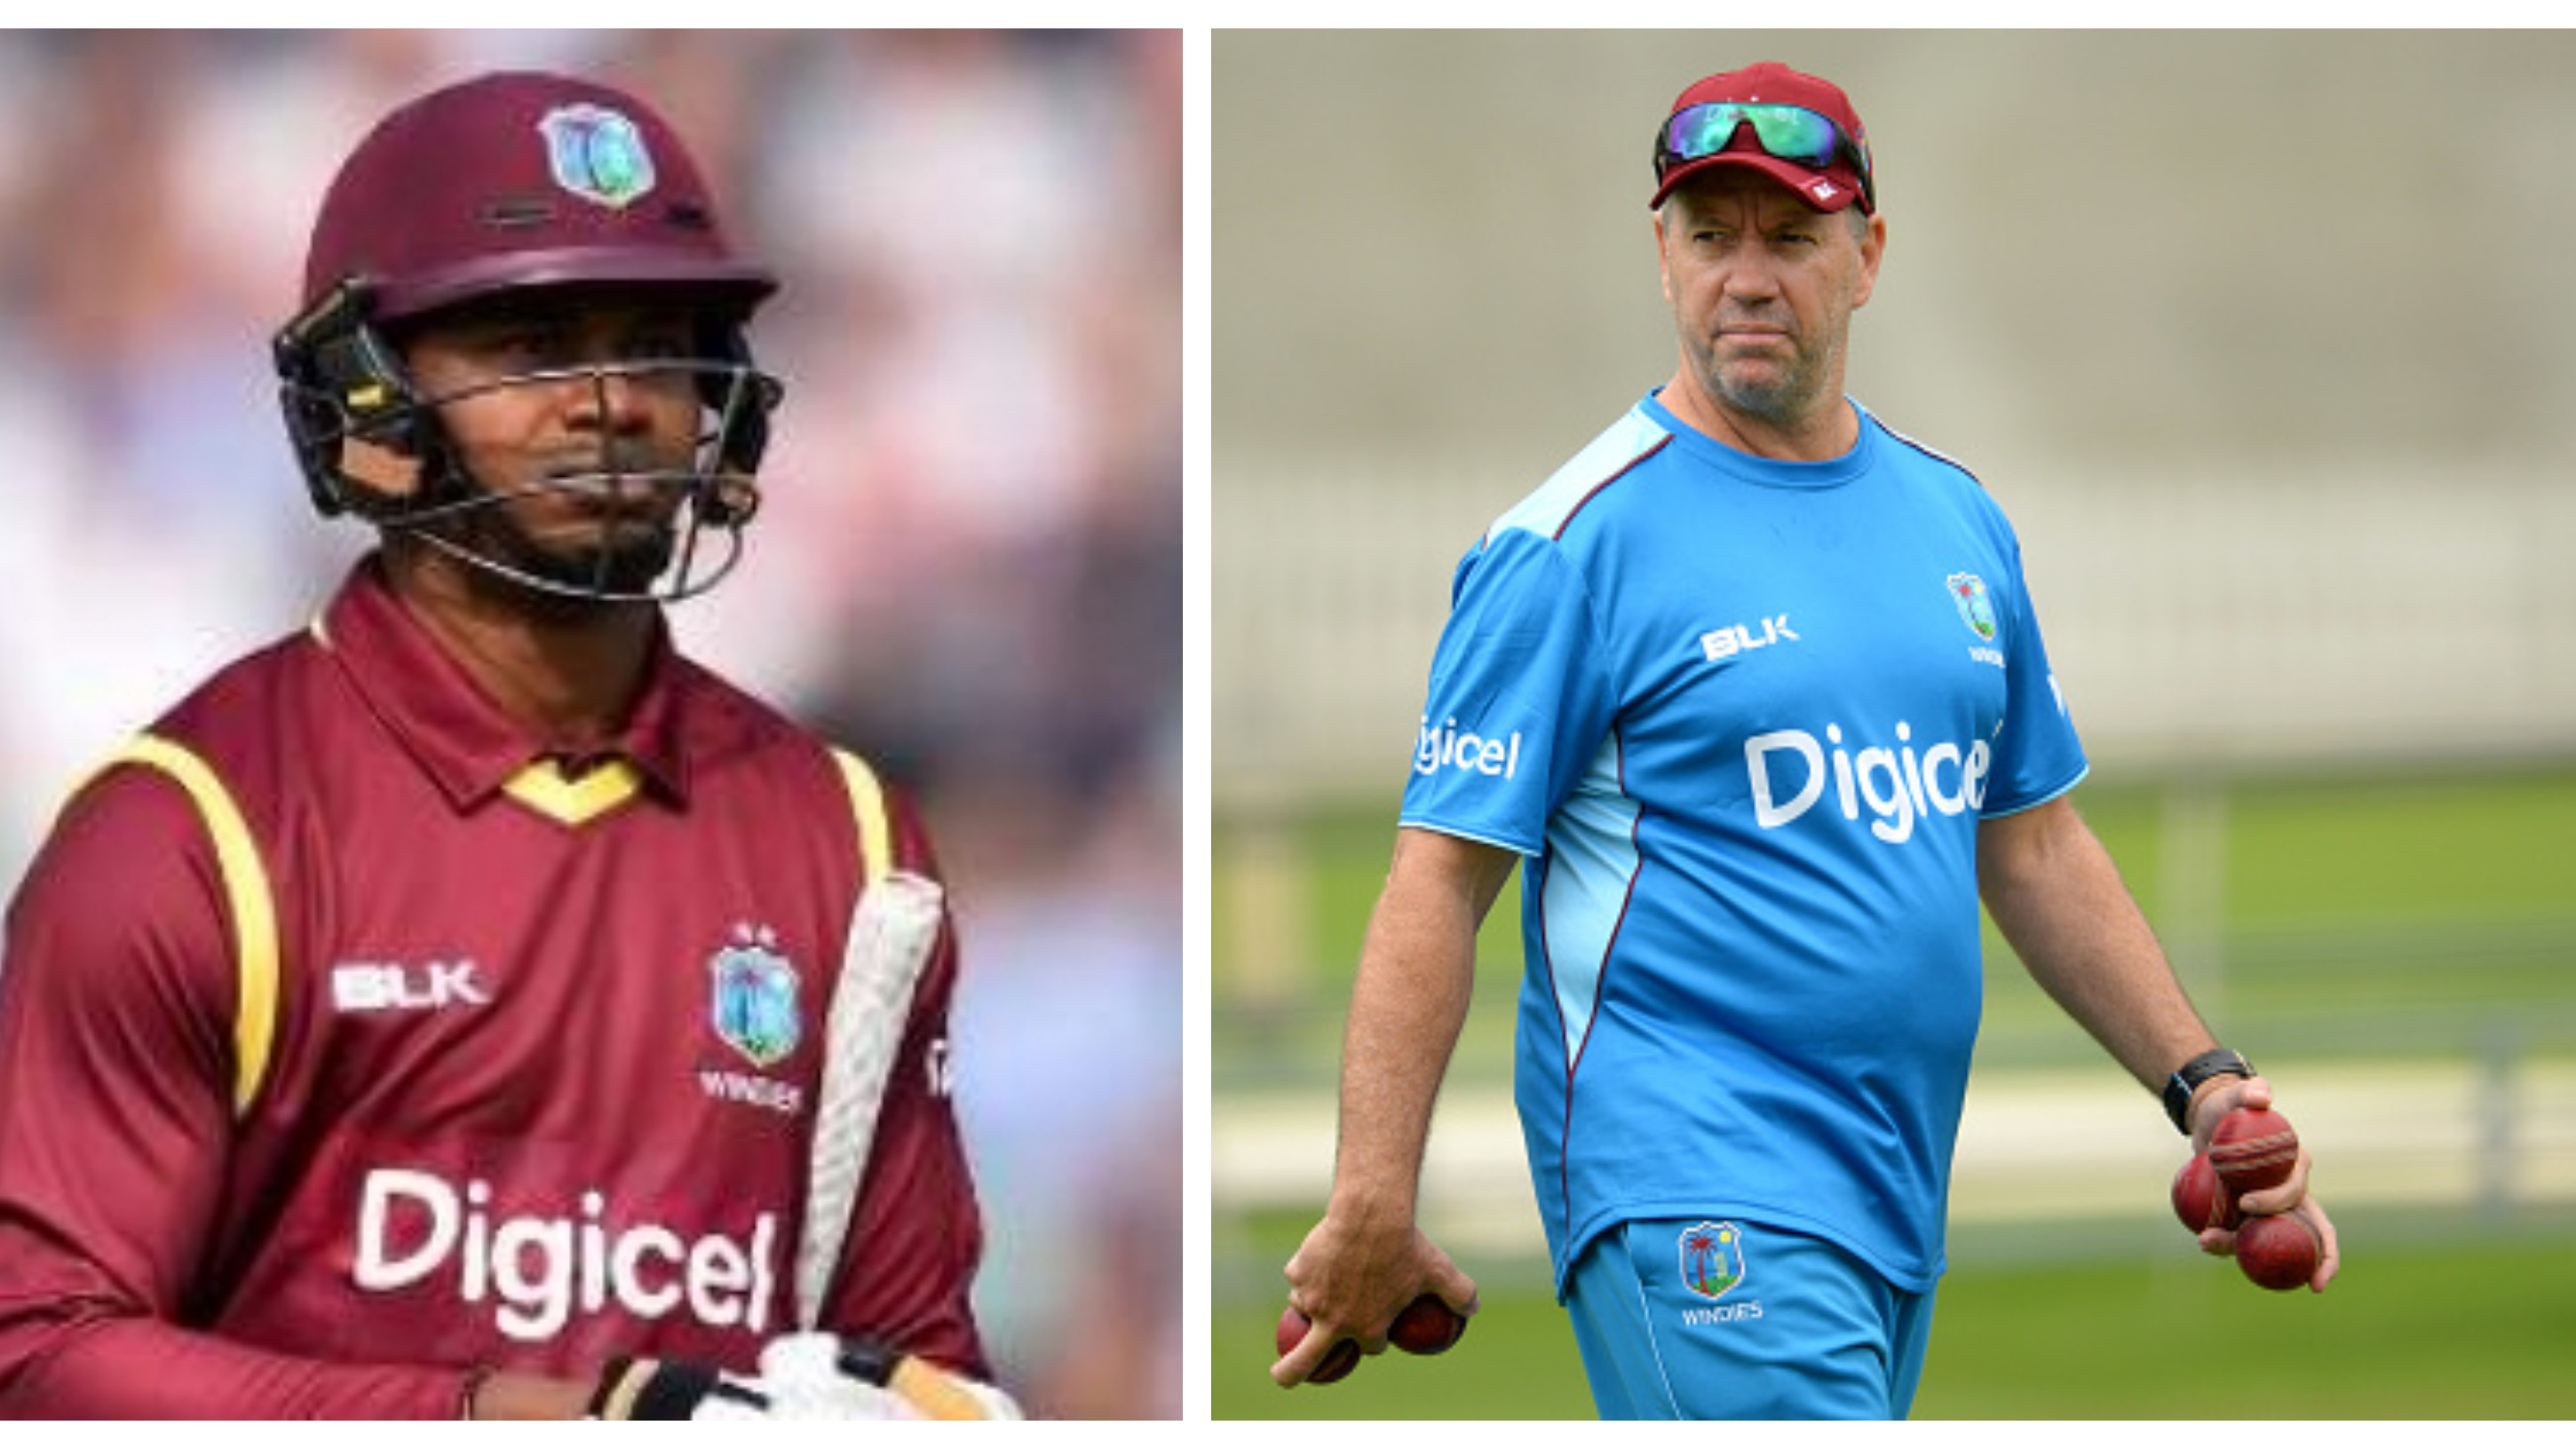 IND v WI 2018: Stuart Law comes out in support of the under-performing Marlon Samuels